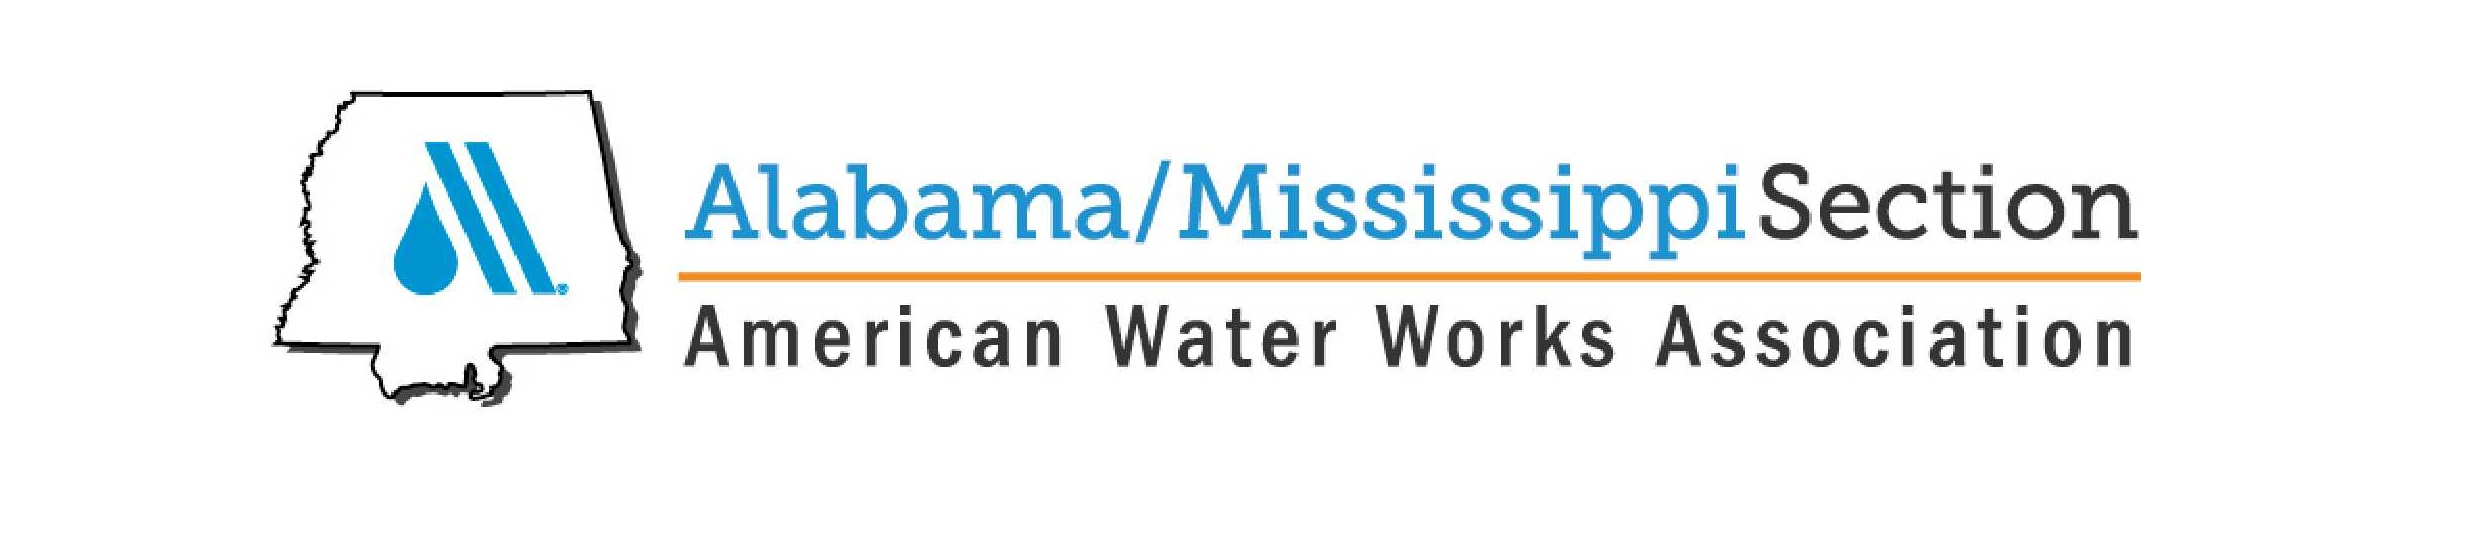 Alabama/Mississippi Section American Water Works Association 70th Annual Conference